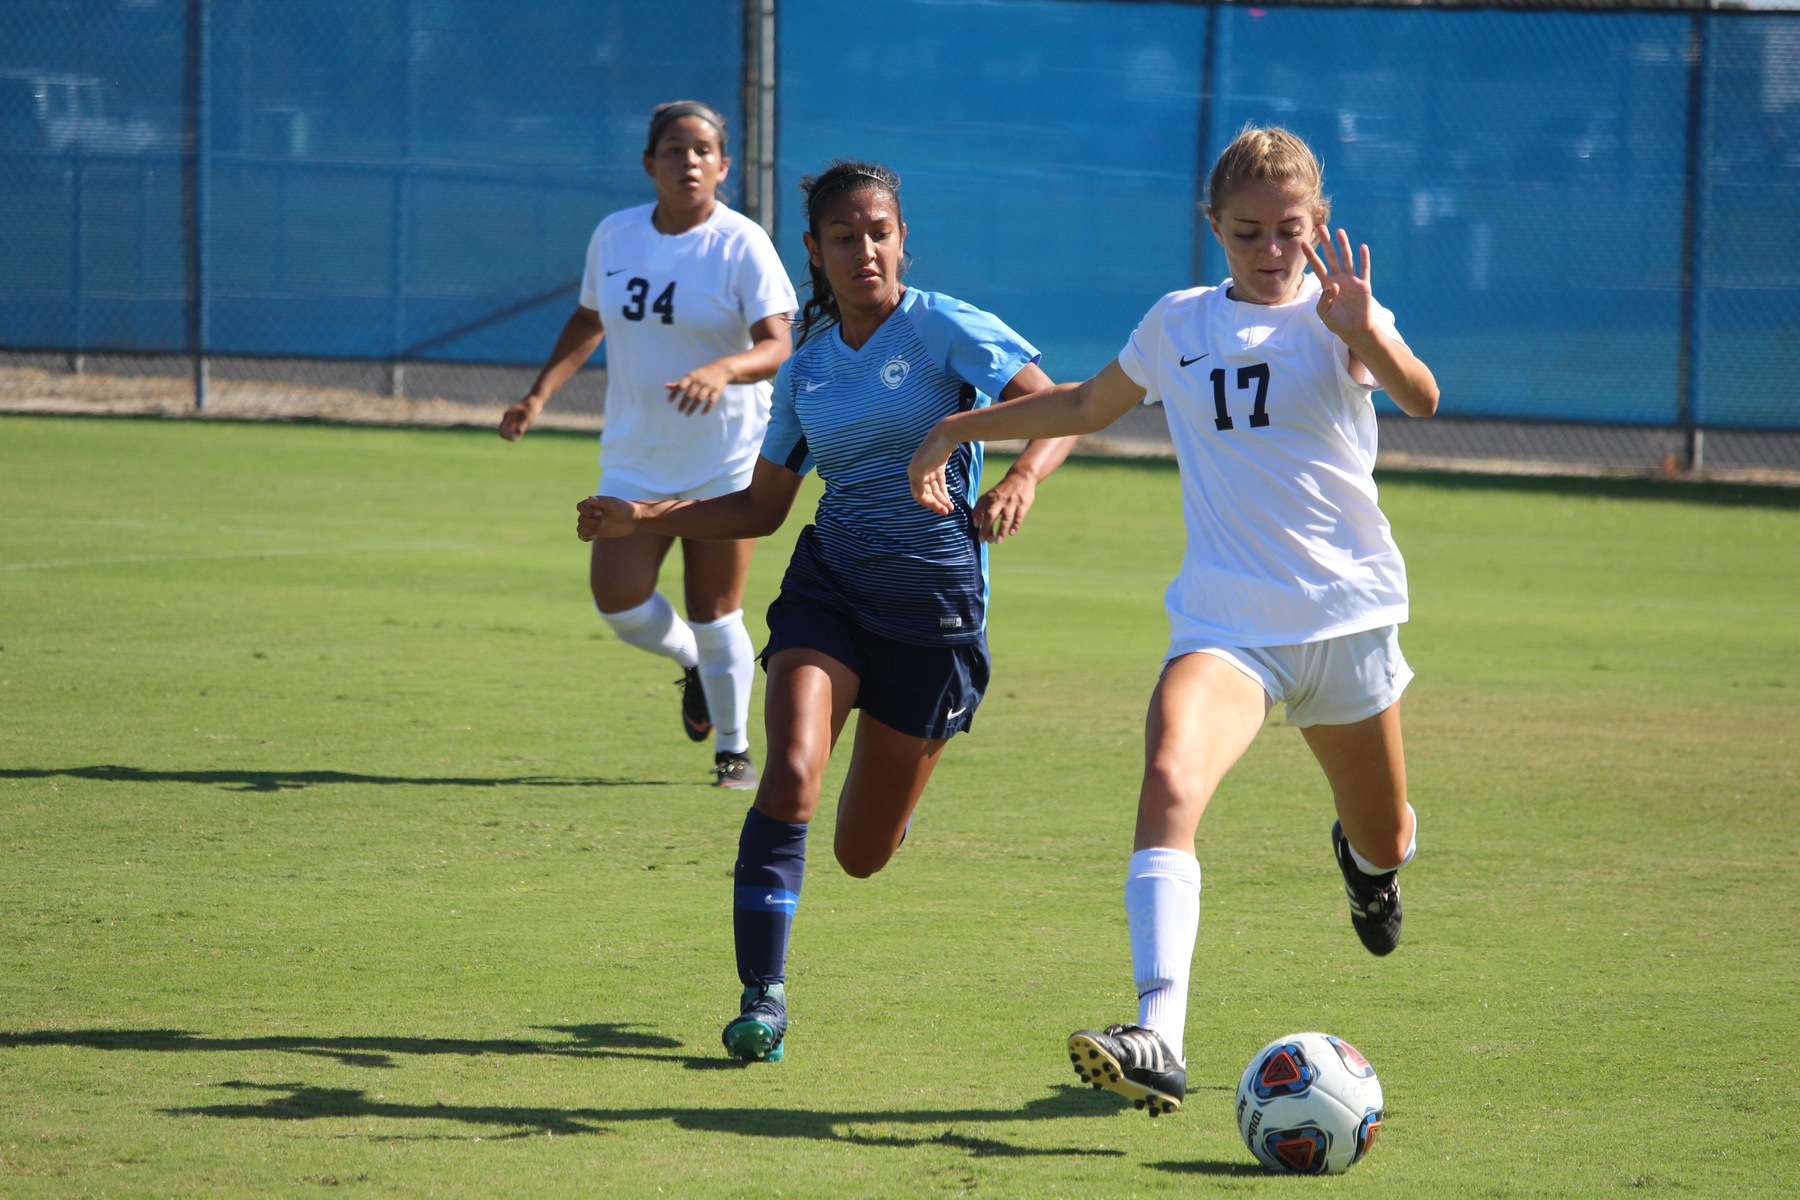 Lady Chargers Knock Off No. 10 Fullerton, 3-0